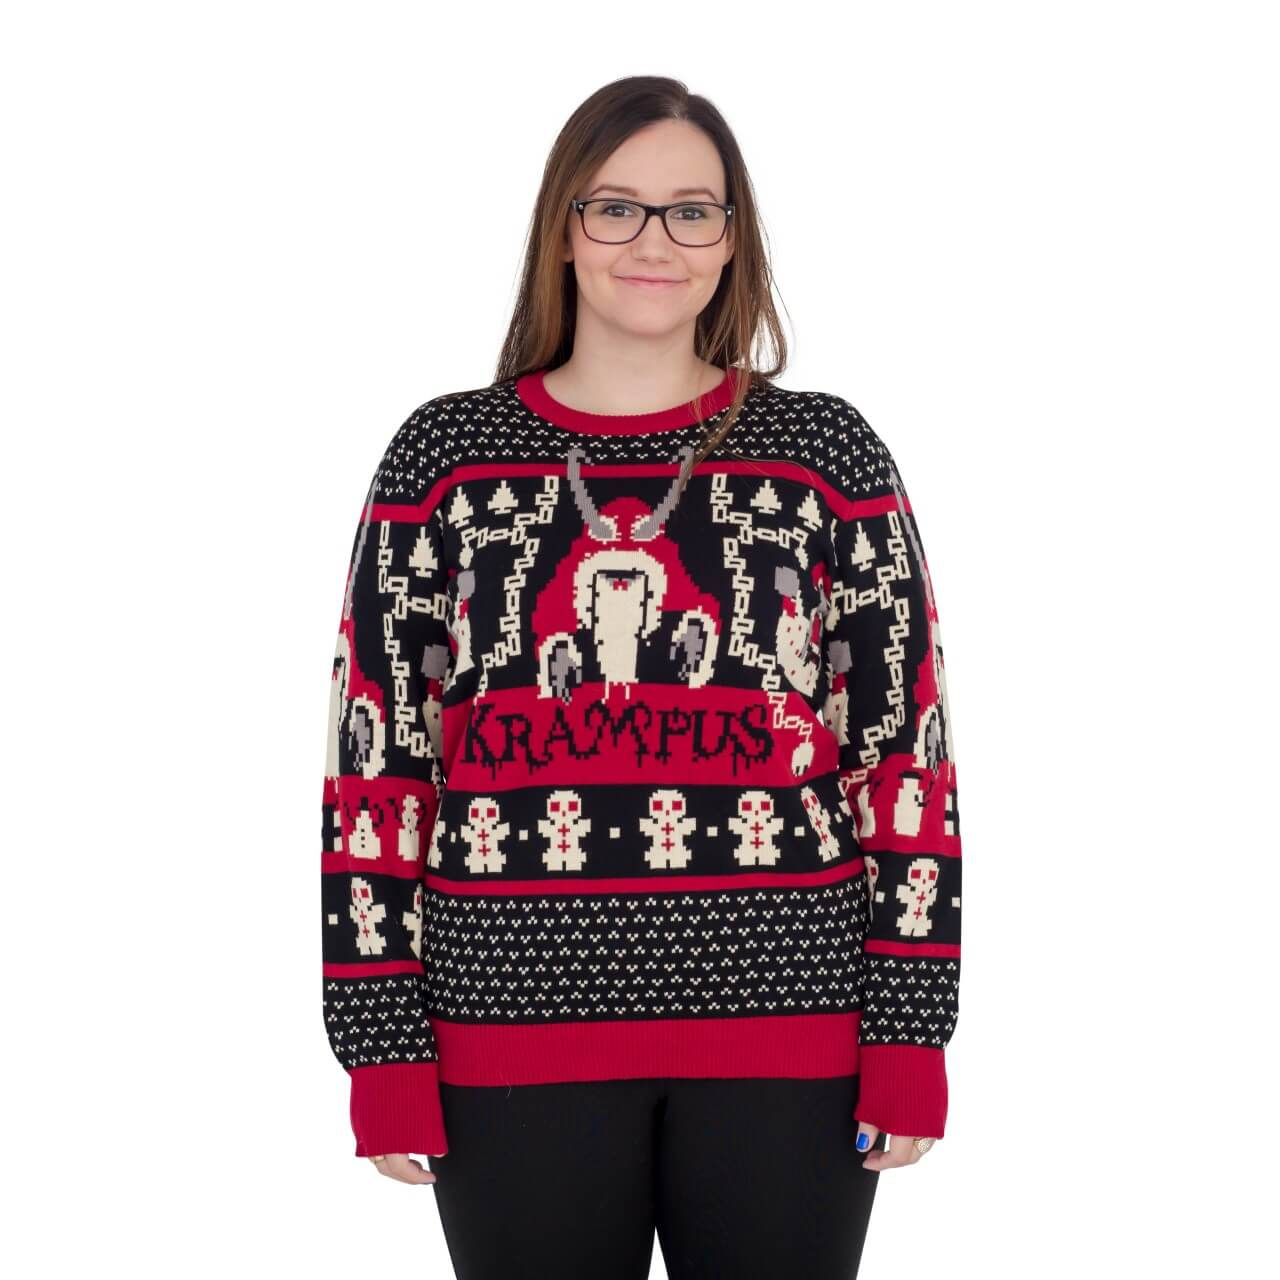 c25a2fbee049e Women s Krampus Knit Ugly Christmas Sweater